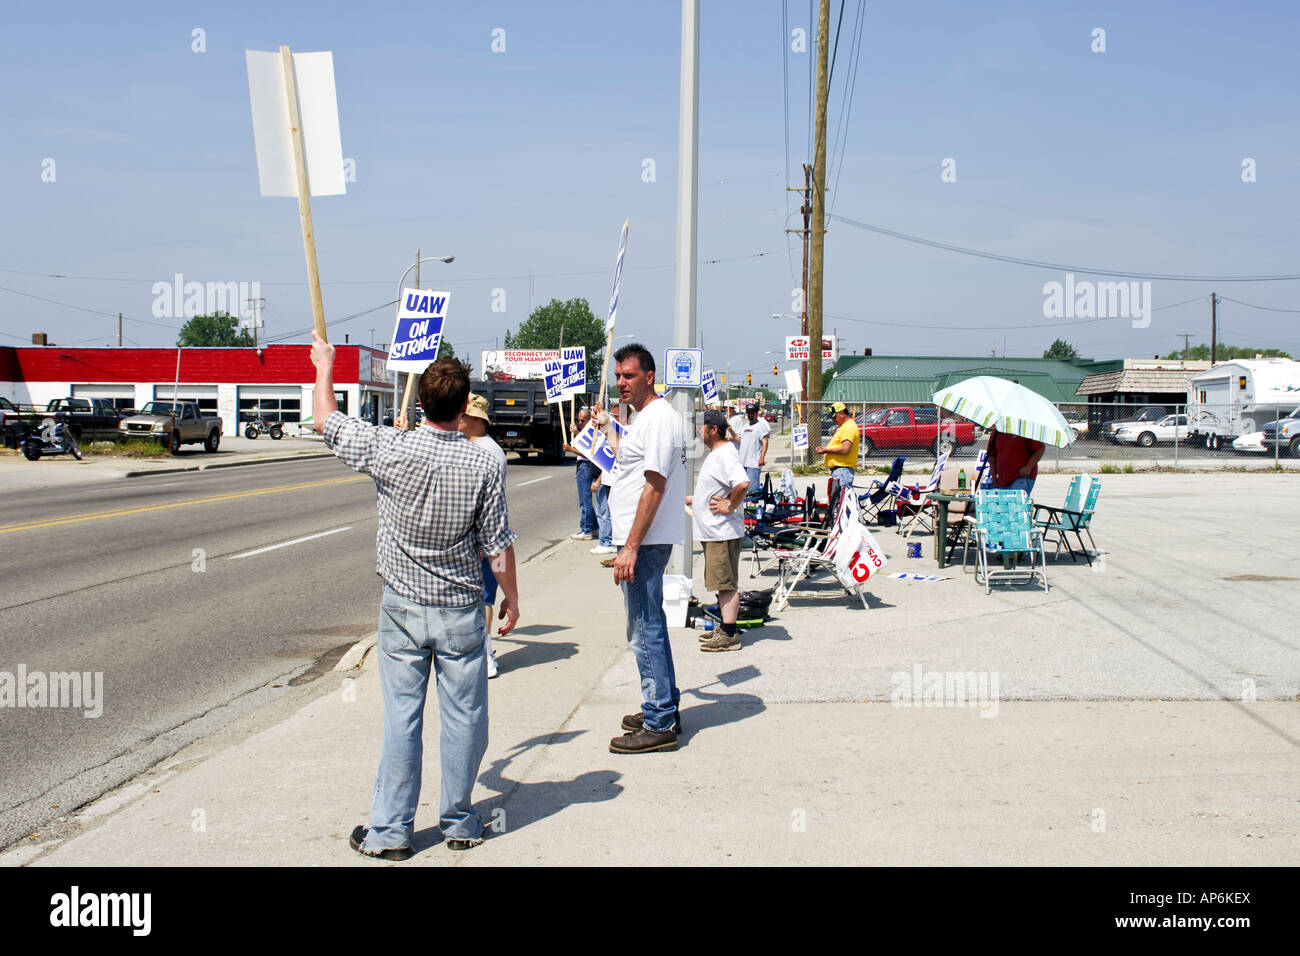 United Auto Workers on strike over pay cuts at a factory in Michigan MI - Stock Image